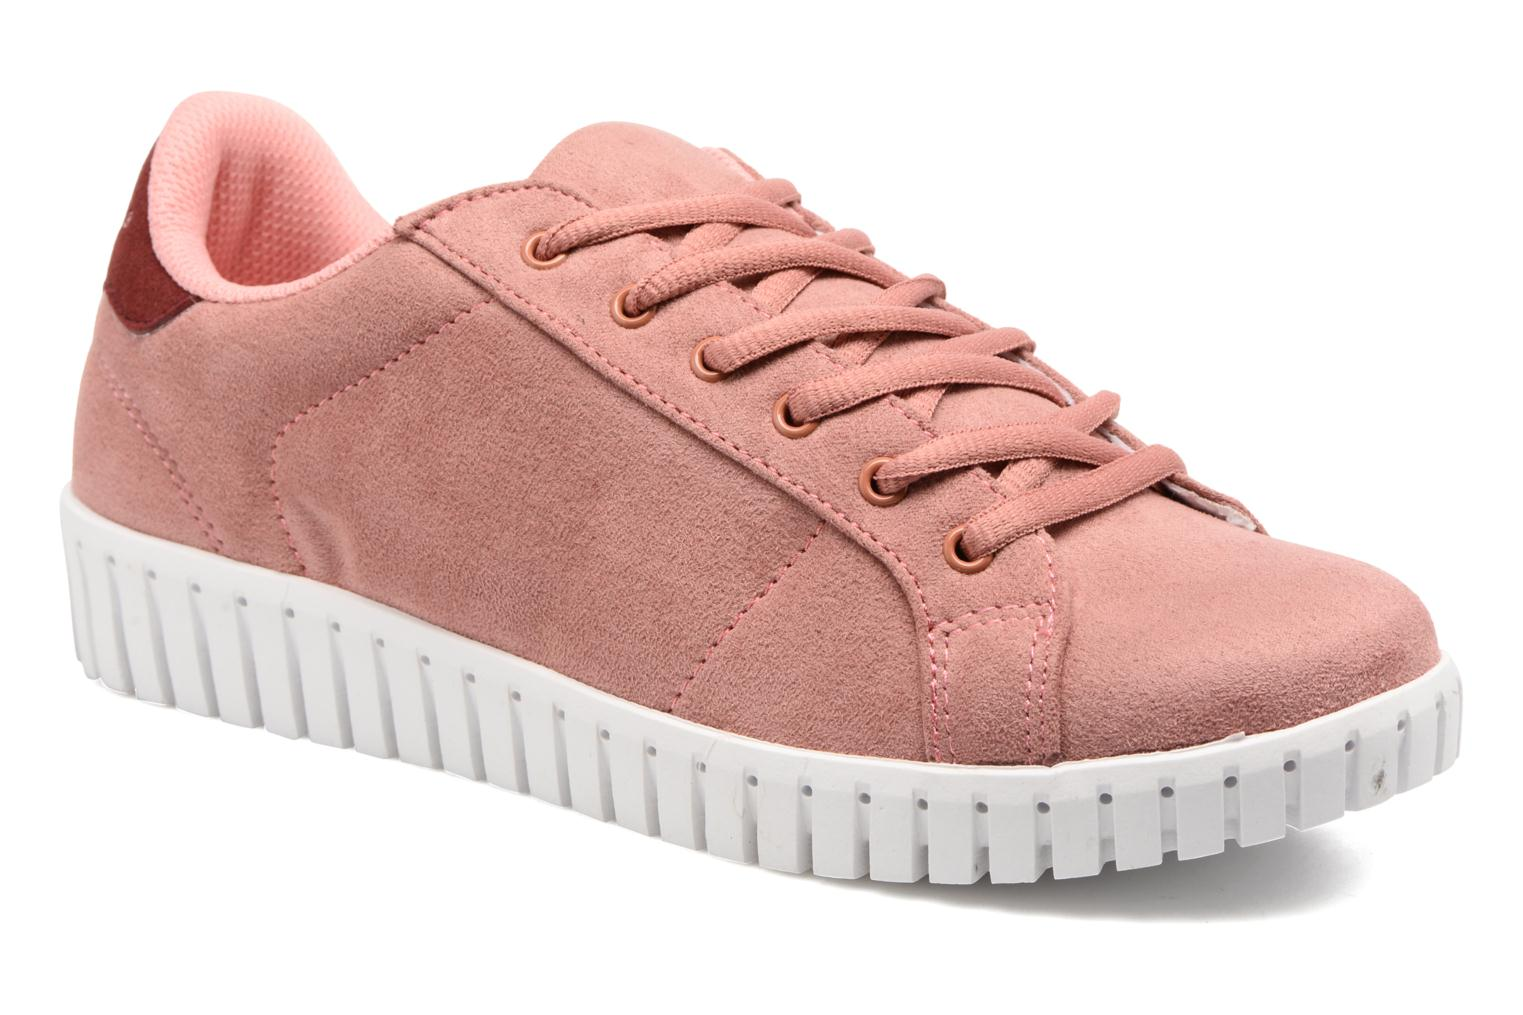 Sally Sneaker by Vero ModaRebajas - 20%